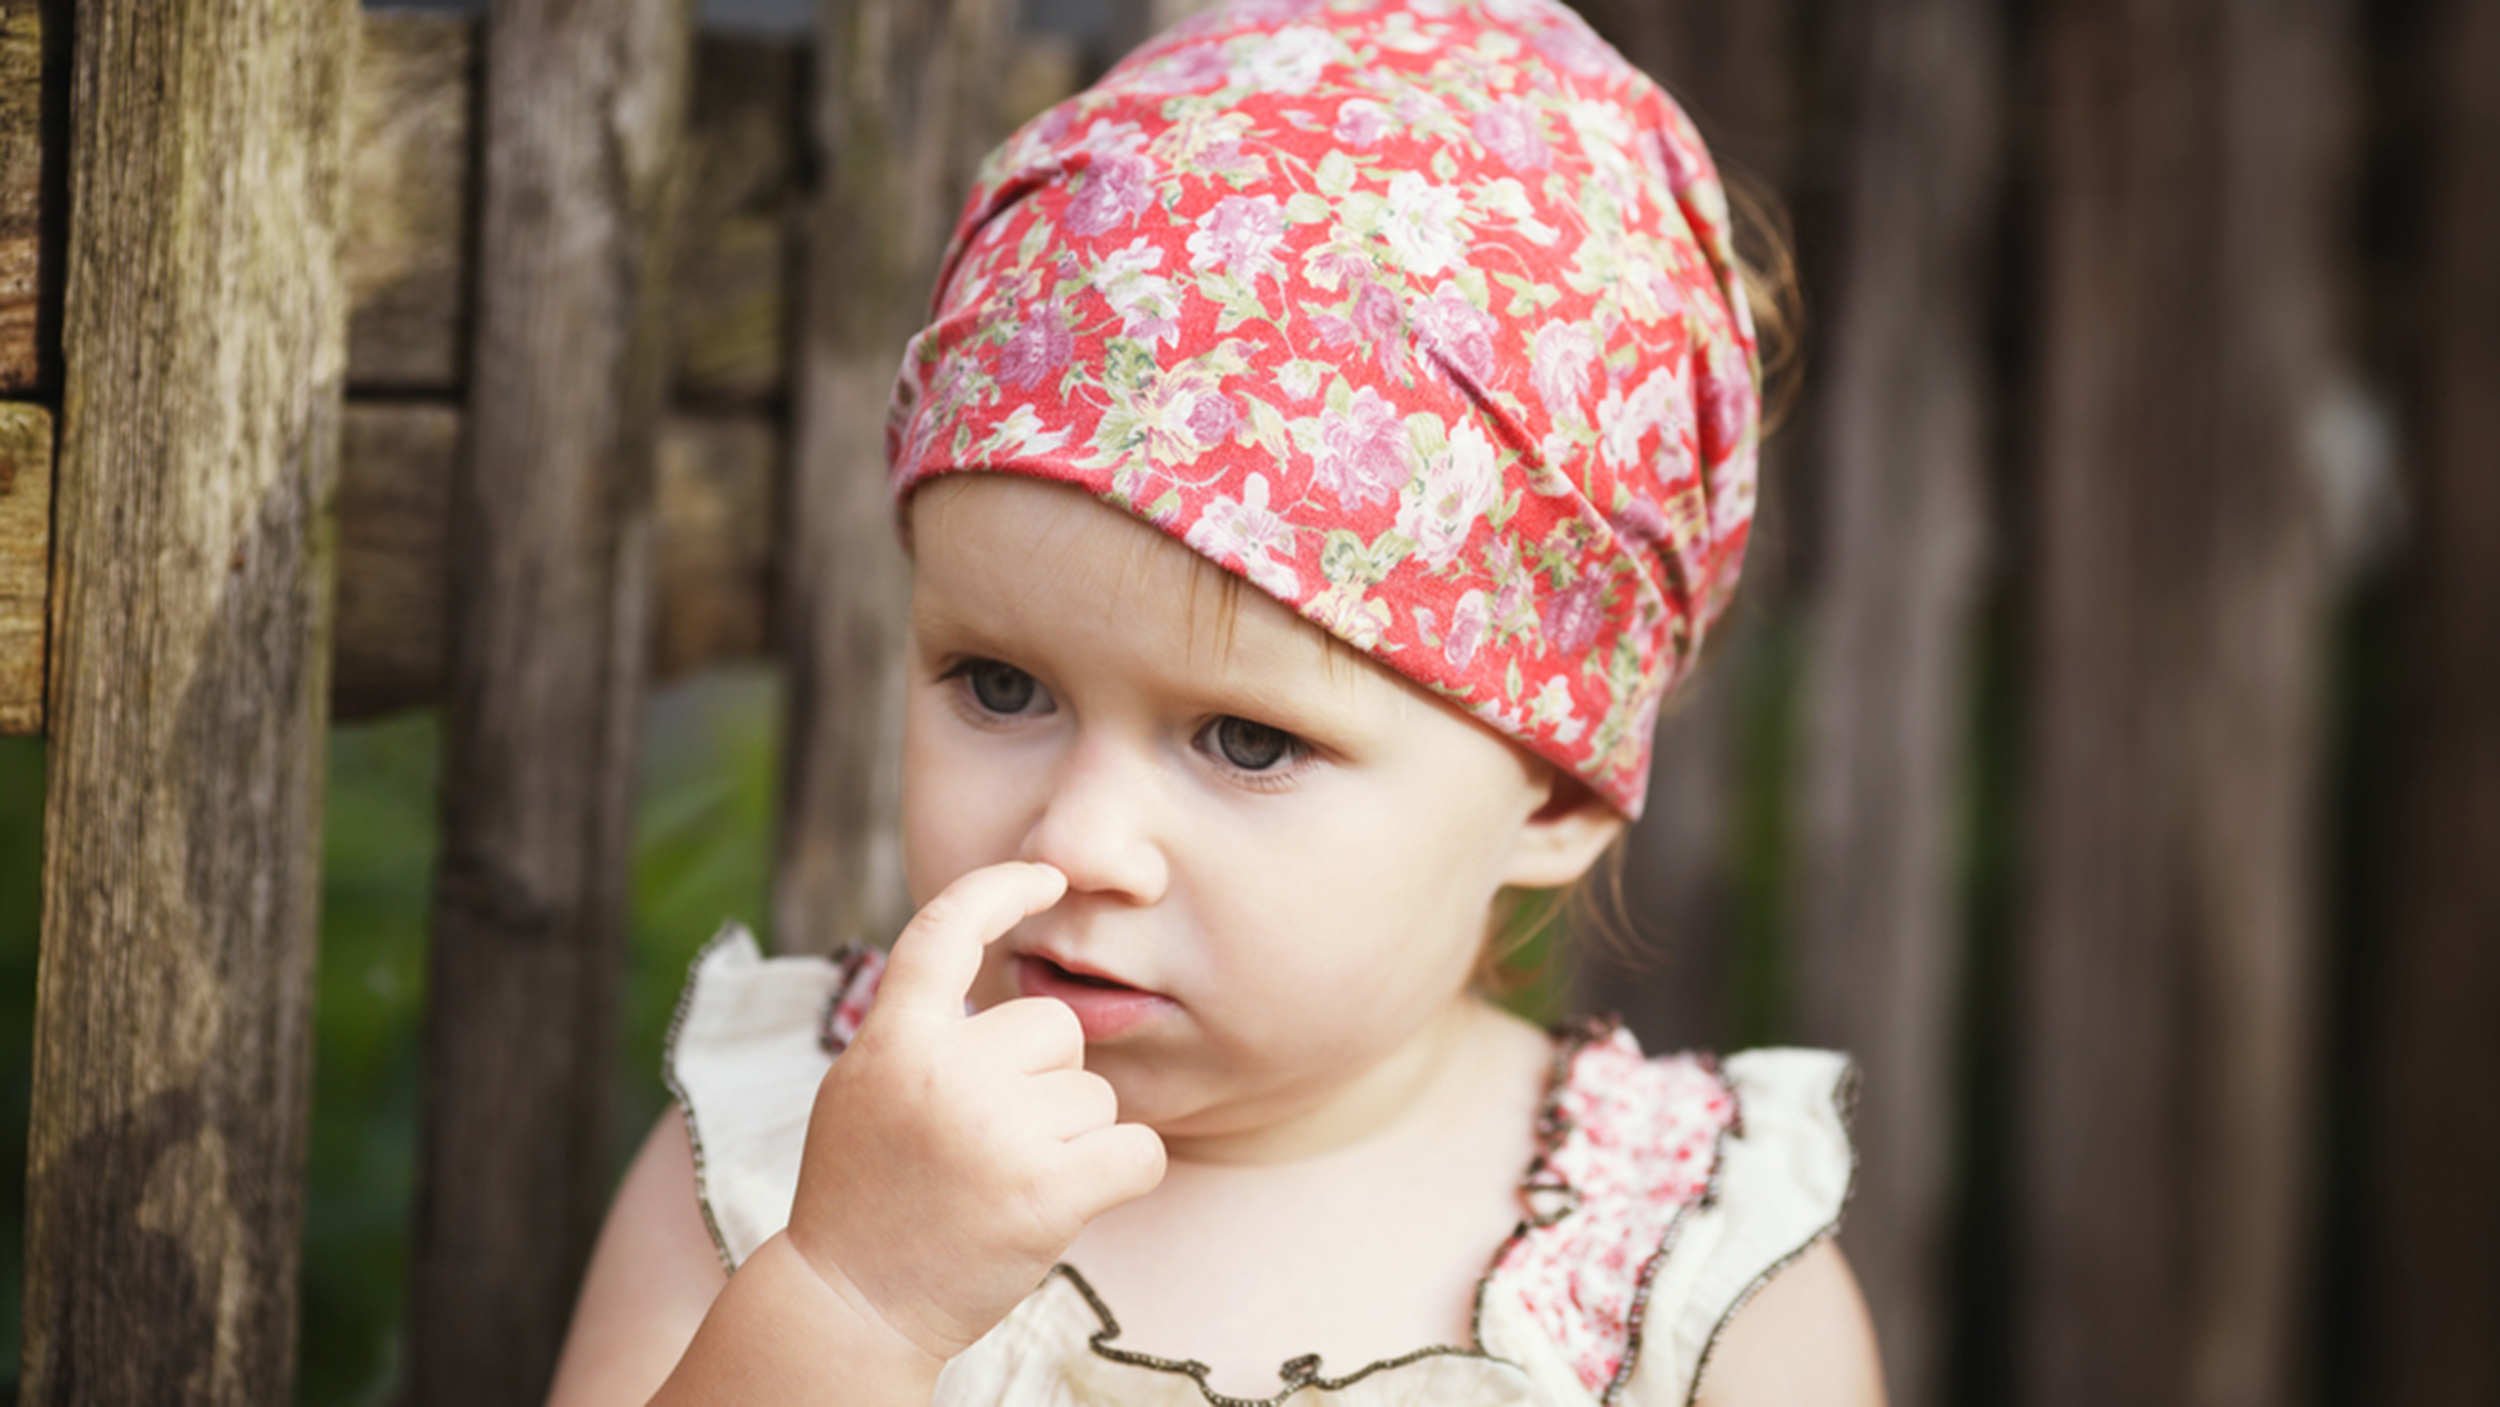 Nose-picking: What's normal and what's not for kids